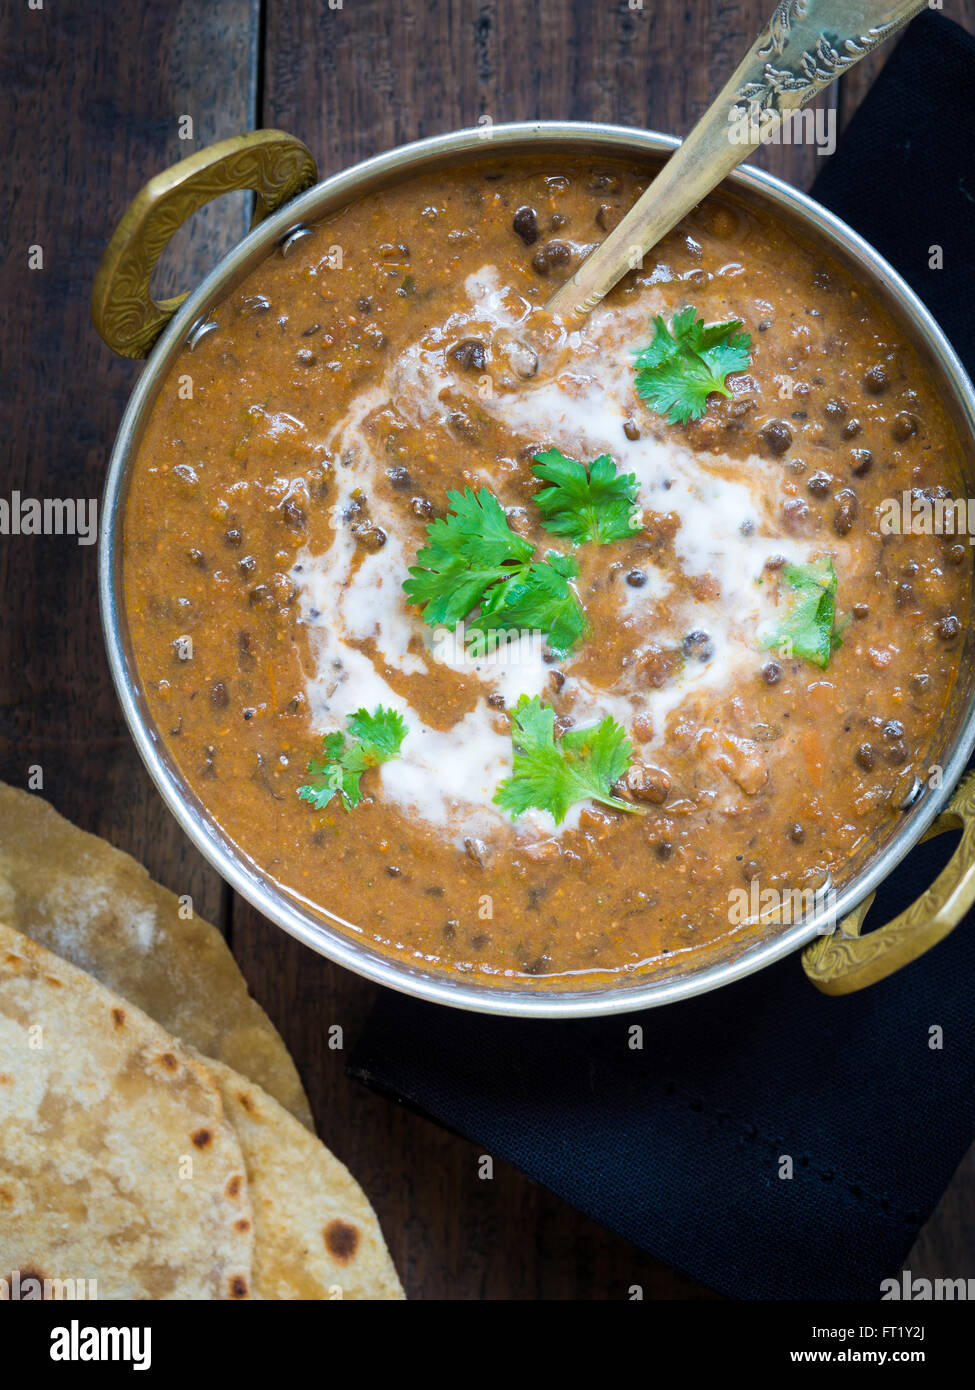 """Dal makhani (""""Buttery Lentil""""), a popular dish originating from the Punjab region of India and Pakistan. Stock Photo"""